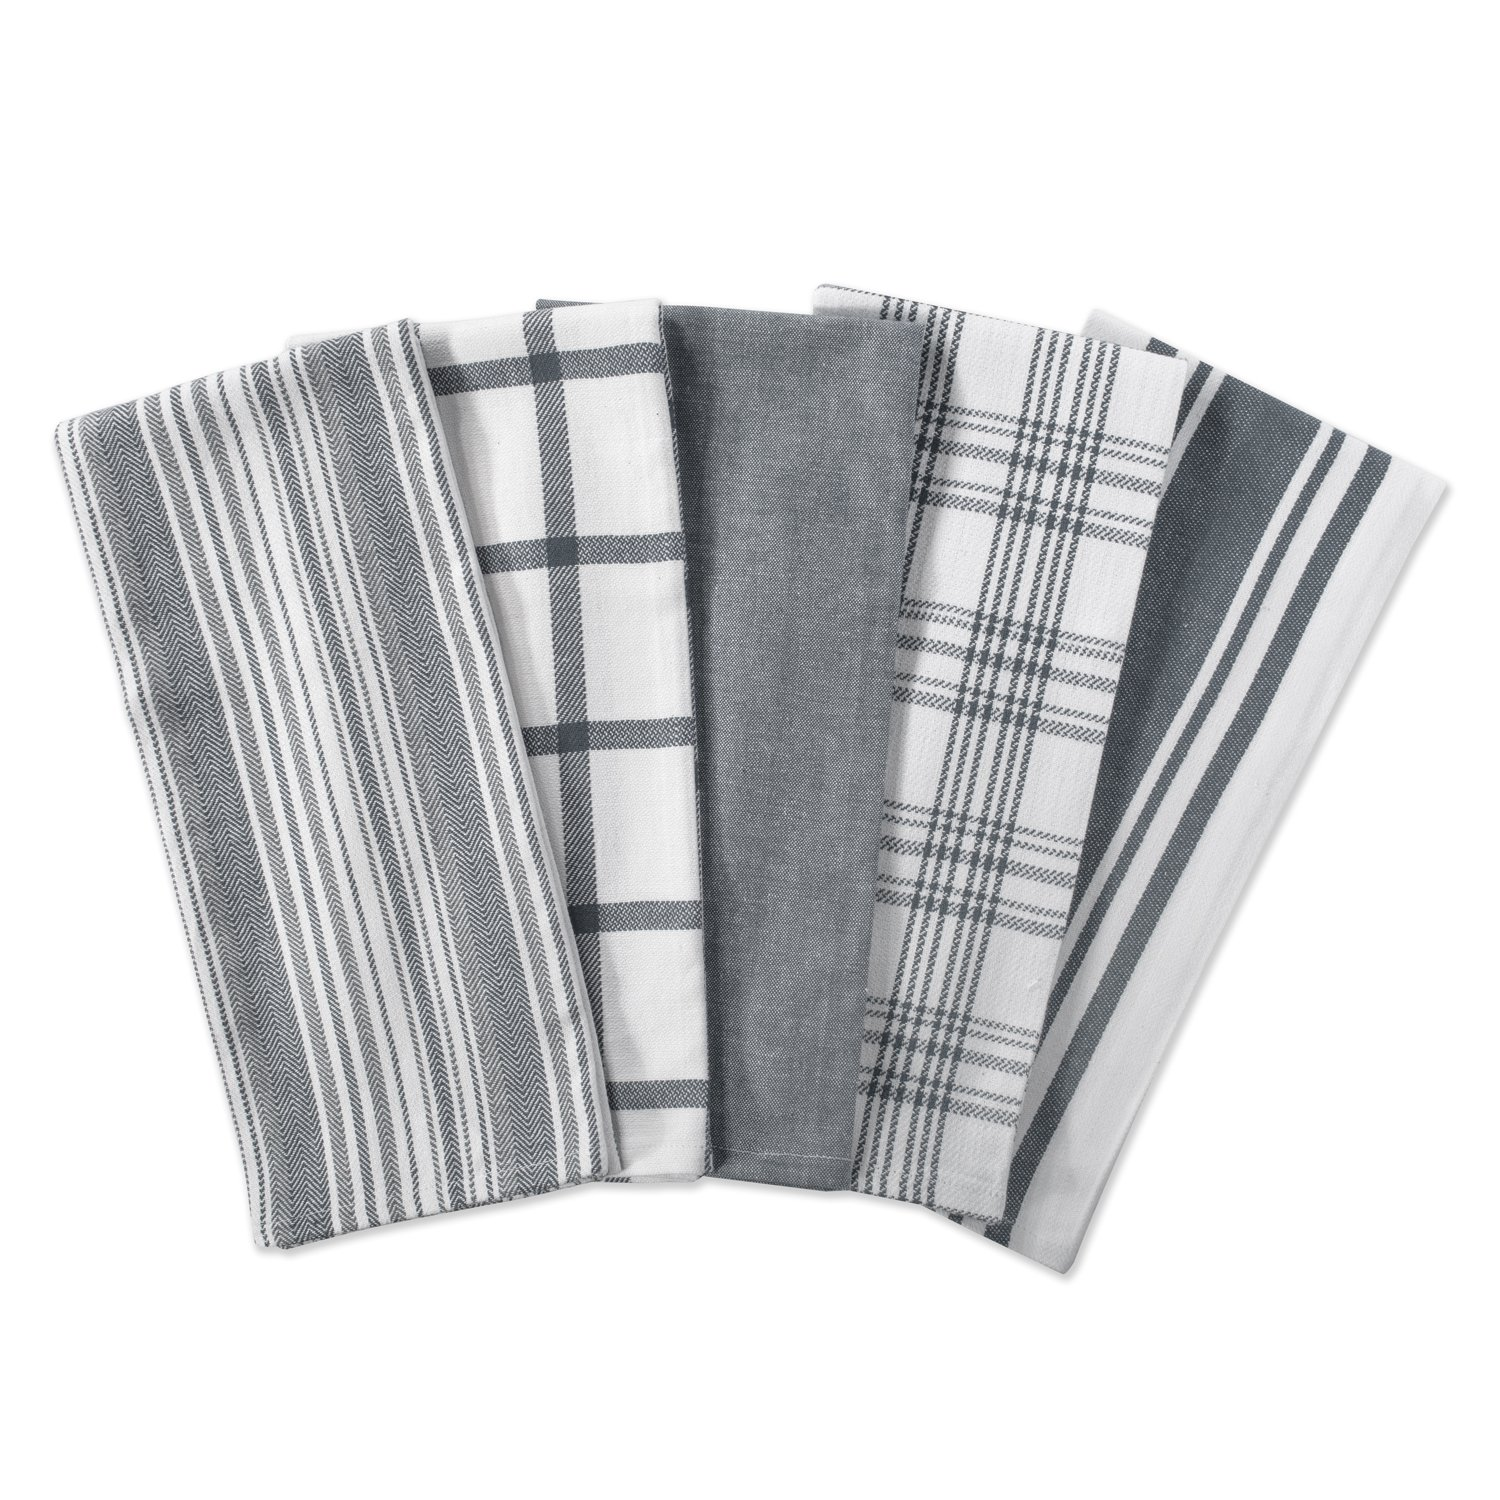 "DII Kitchen Dish Towels (Gray, 18x28""), Ultra Absorbent & Fast Drying, Professional Grade Cotton Tea Towels for Everyday Cooking and Baking -Assorted Patterns, Set of 5"